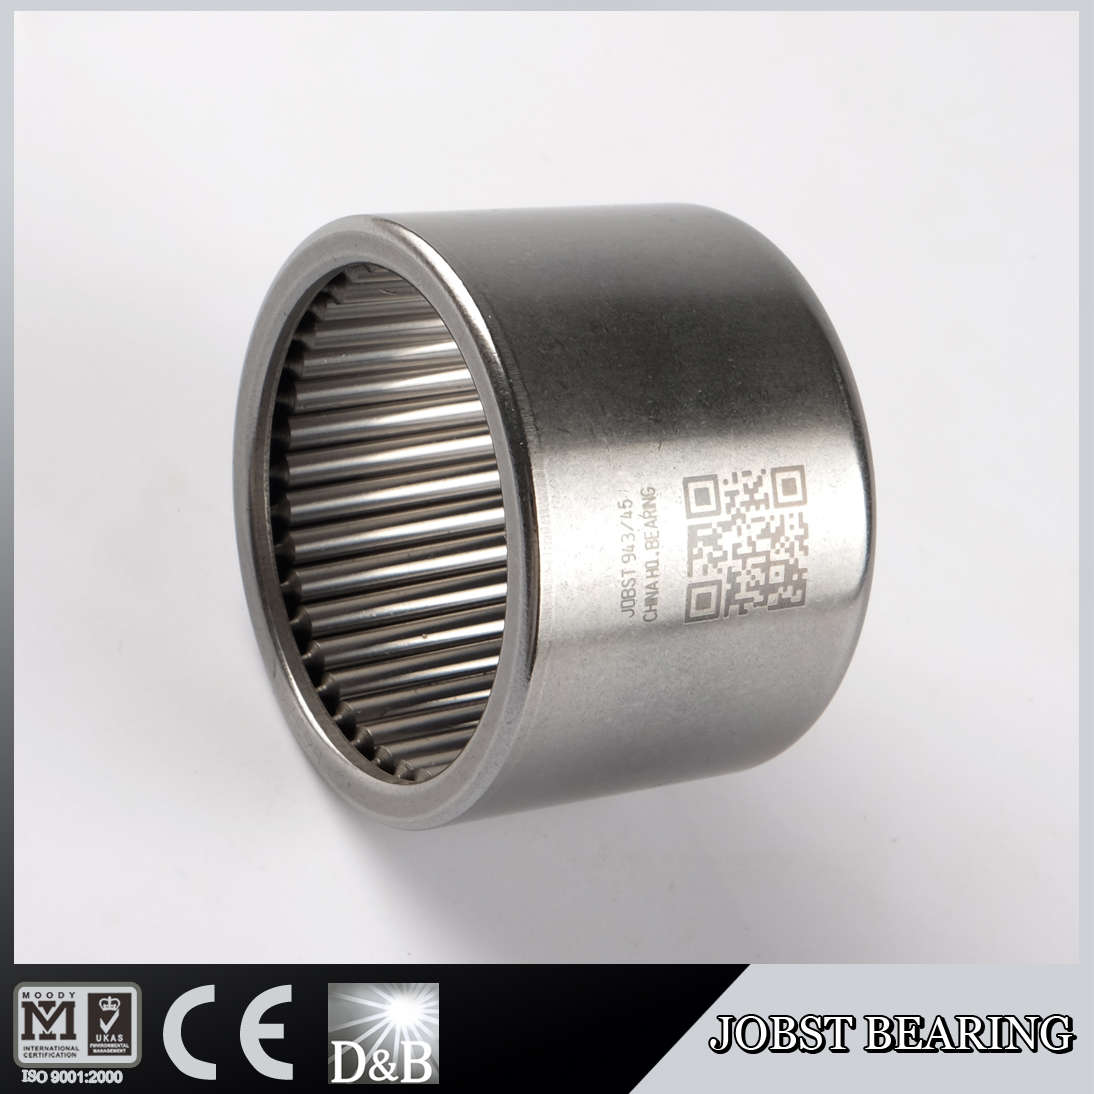 Ball Bearings - NTN SNR